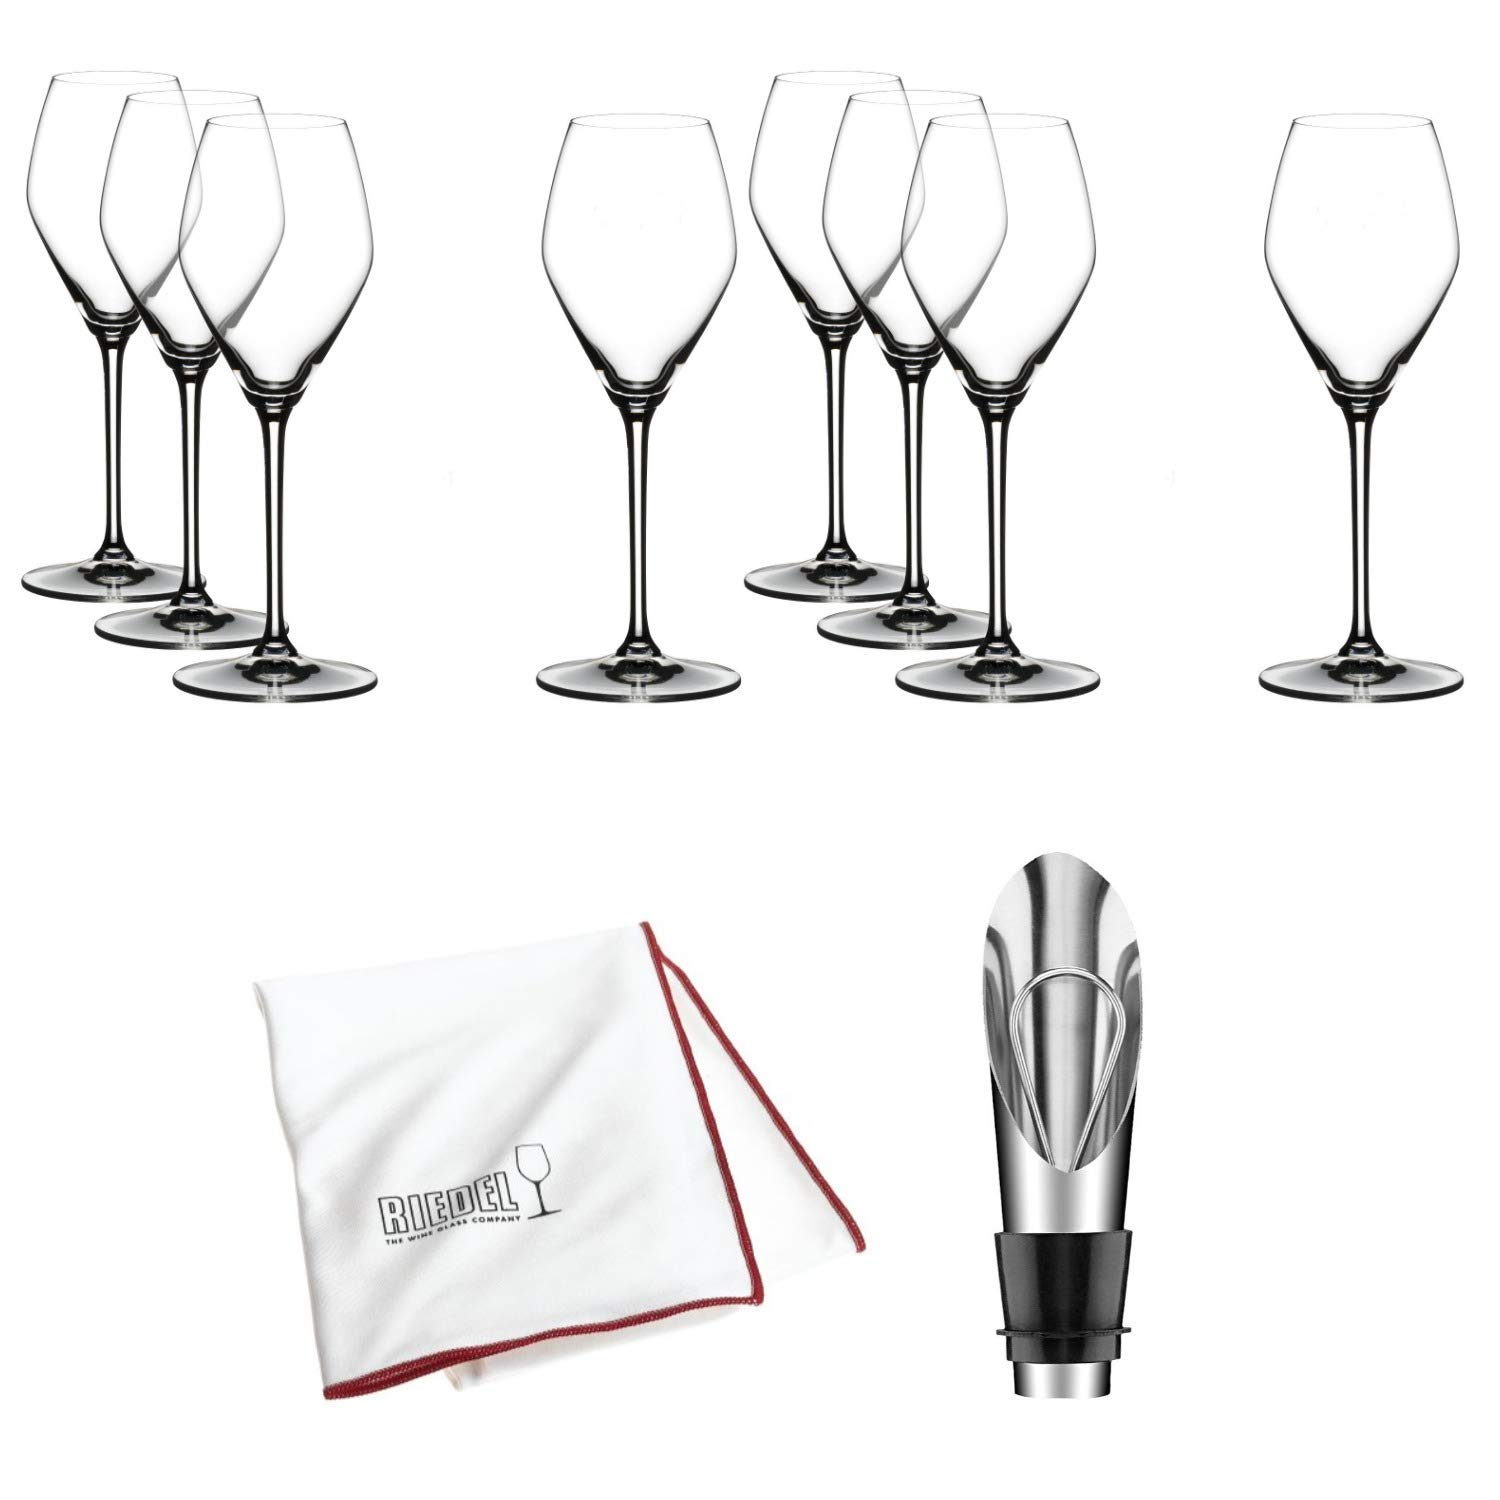 Riedel Extreme Crystal Champagne/Rose Wine Glass, Set of 8 Glasses Includes Wine Pourer with Stopper, Bottle Opener and Polishing Cloth